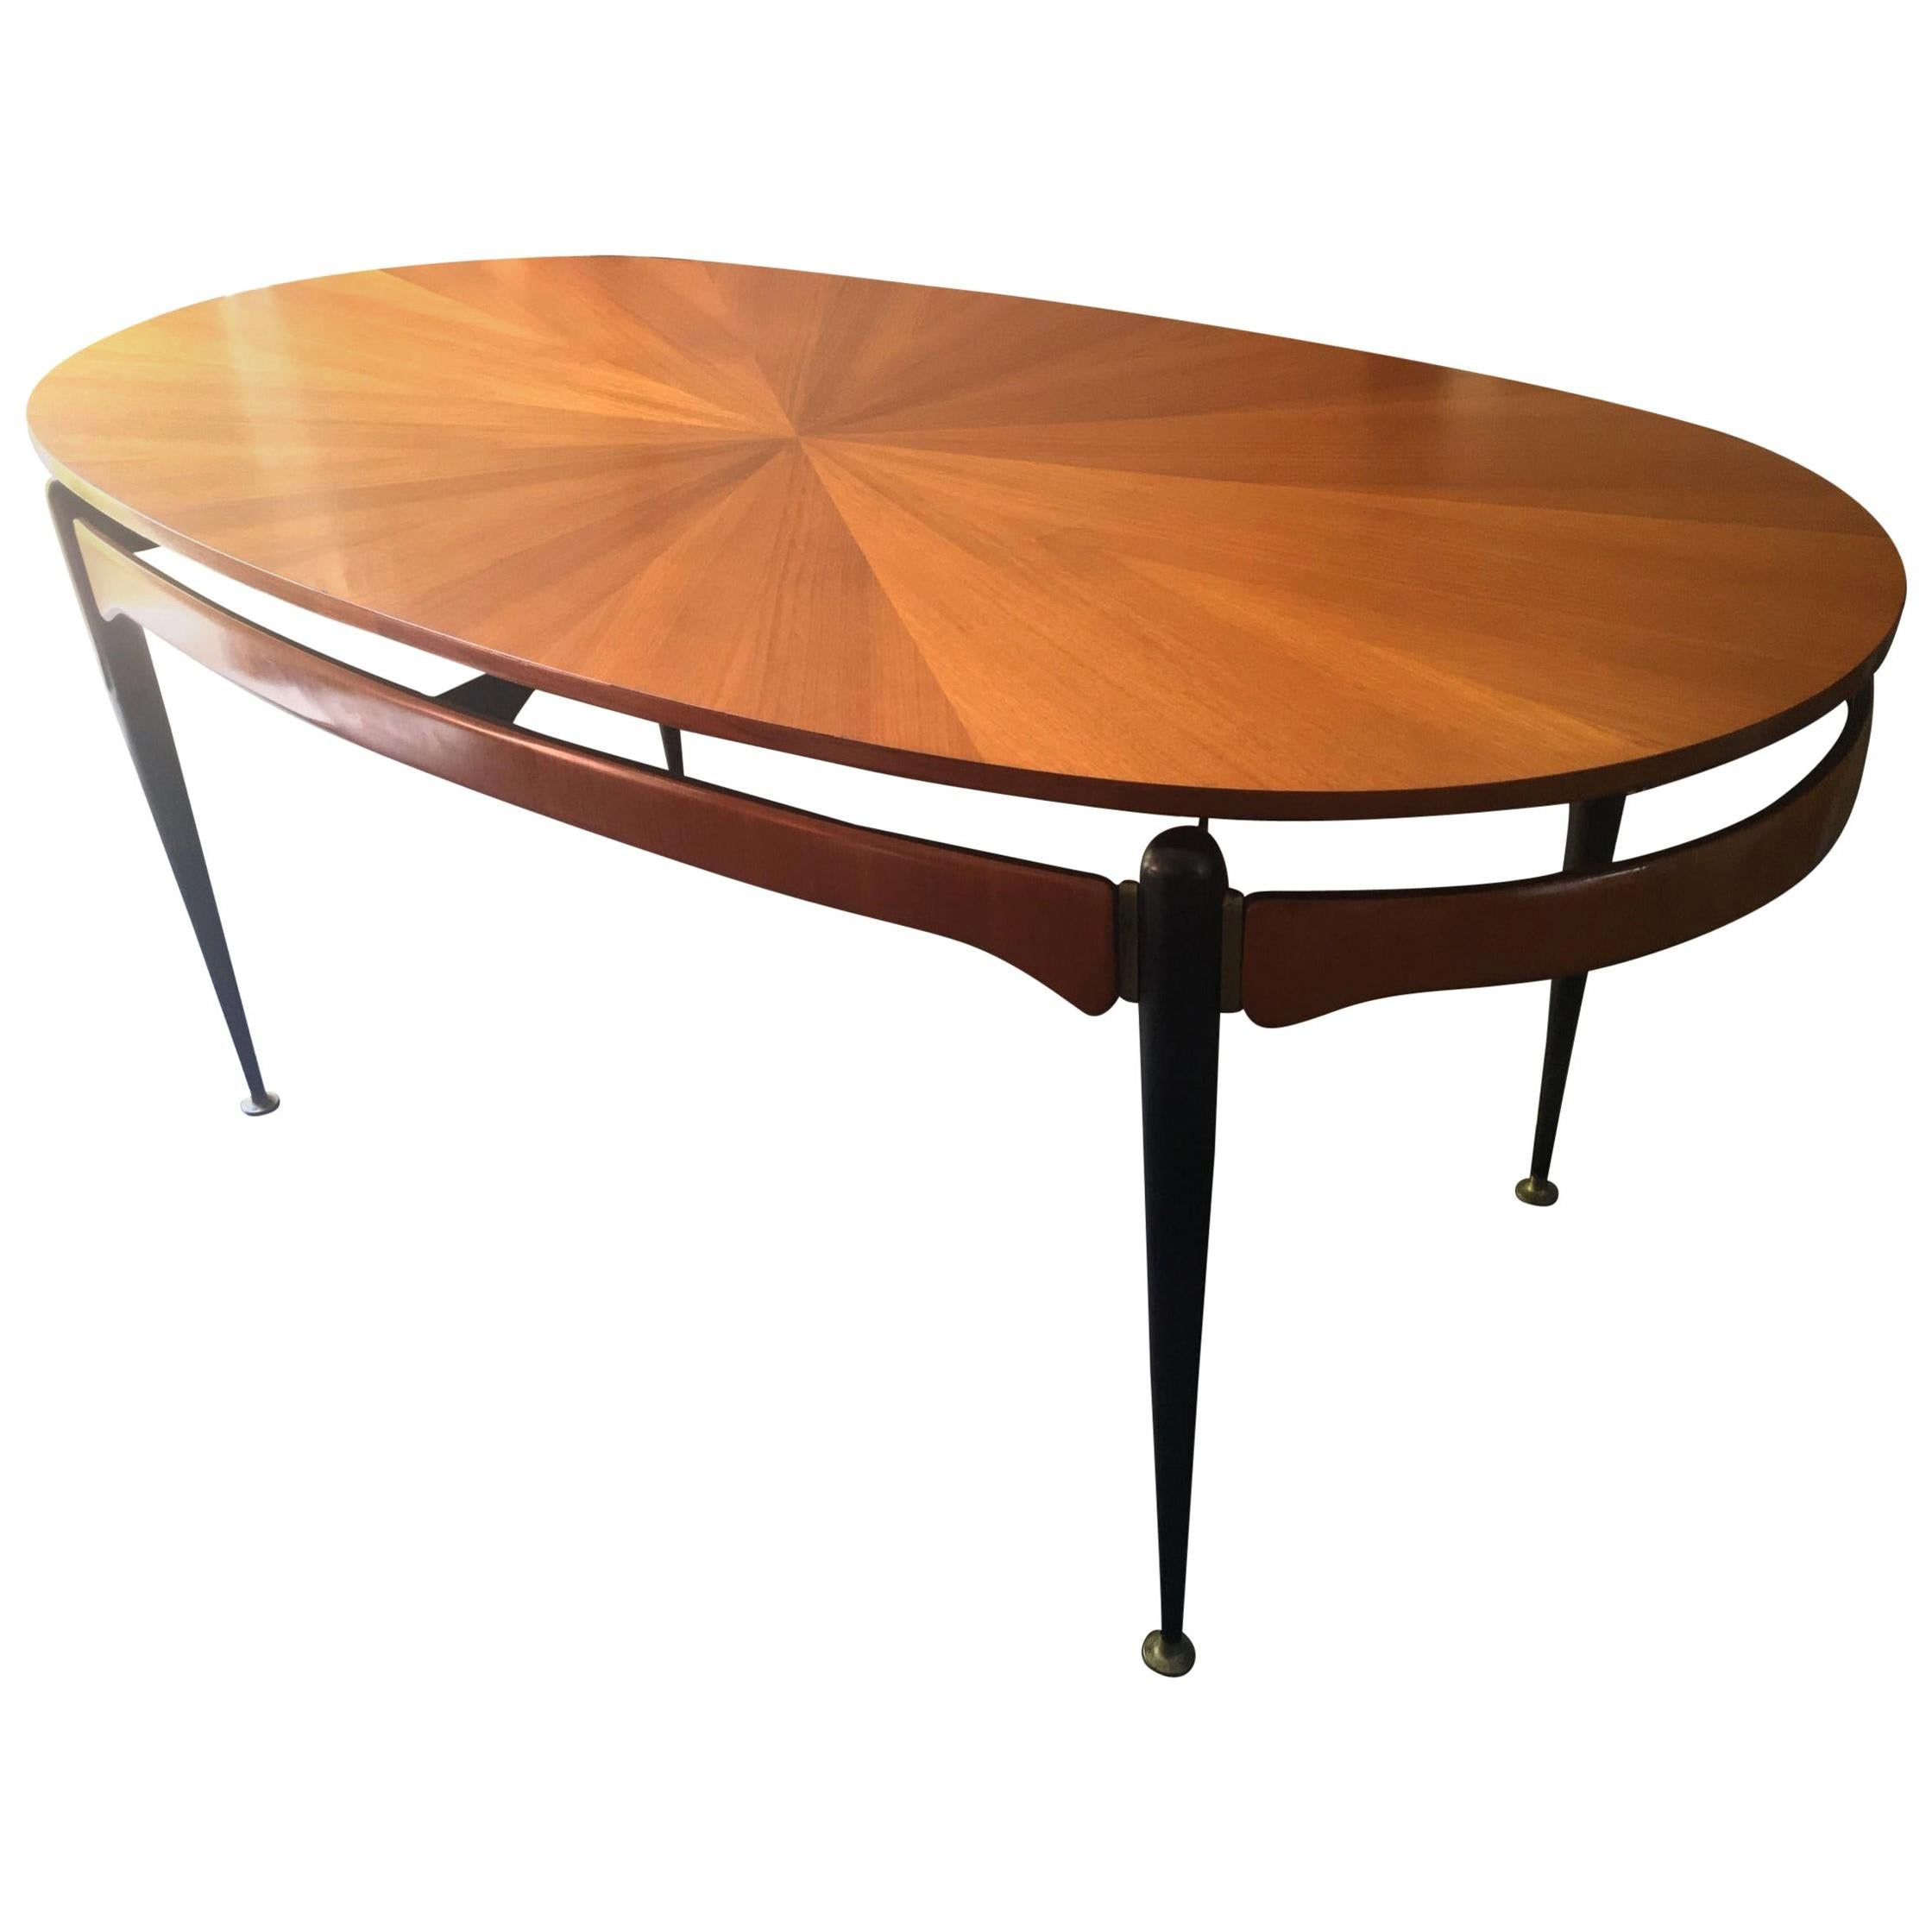 Table with Sunburst Top Attributed to Silvio Cavatorta, Italy, 1950s